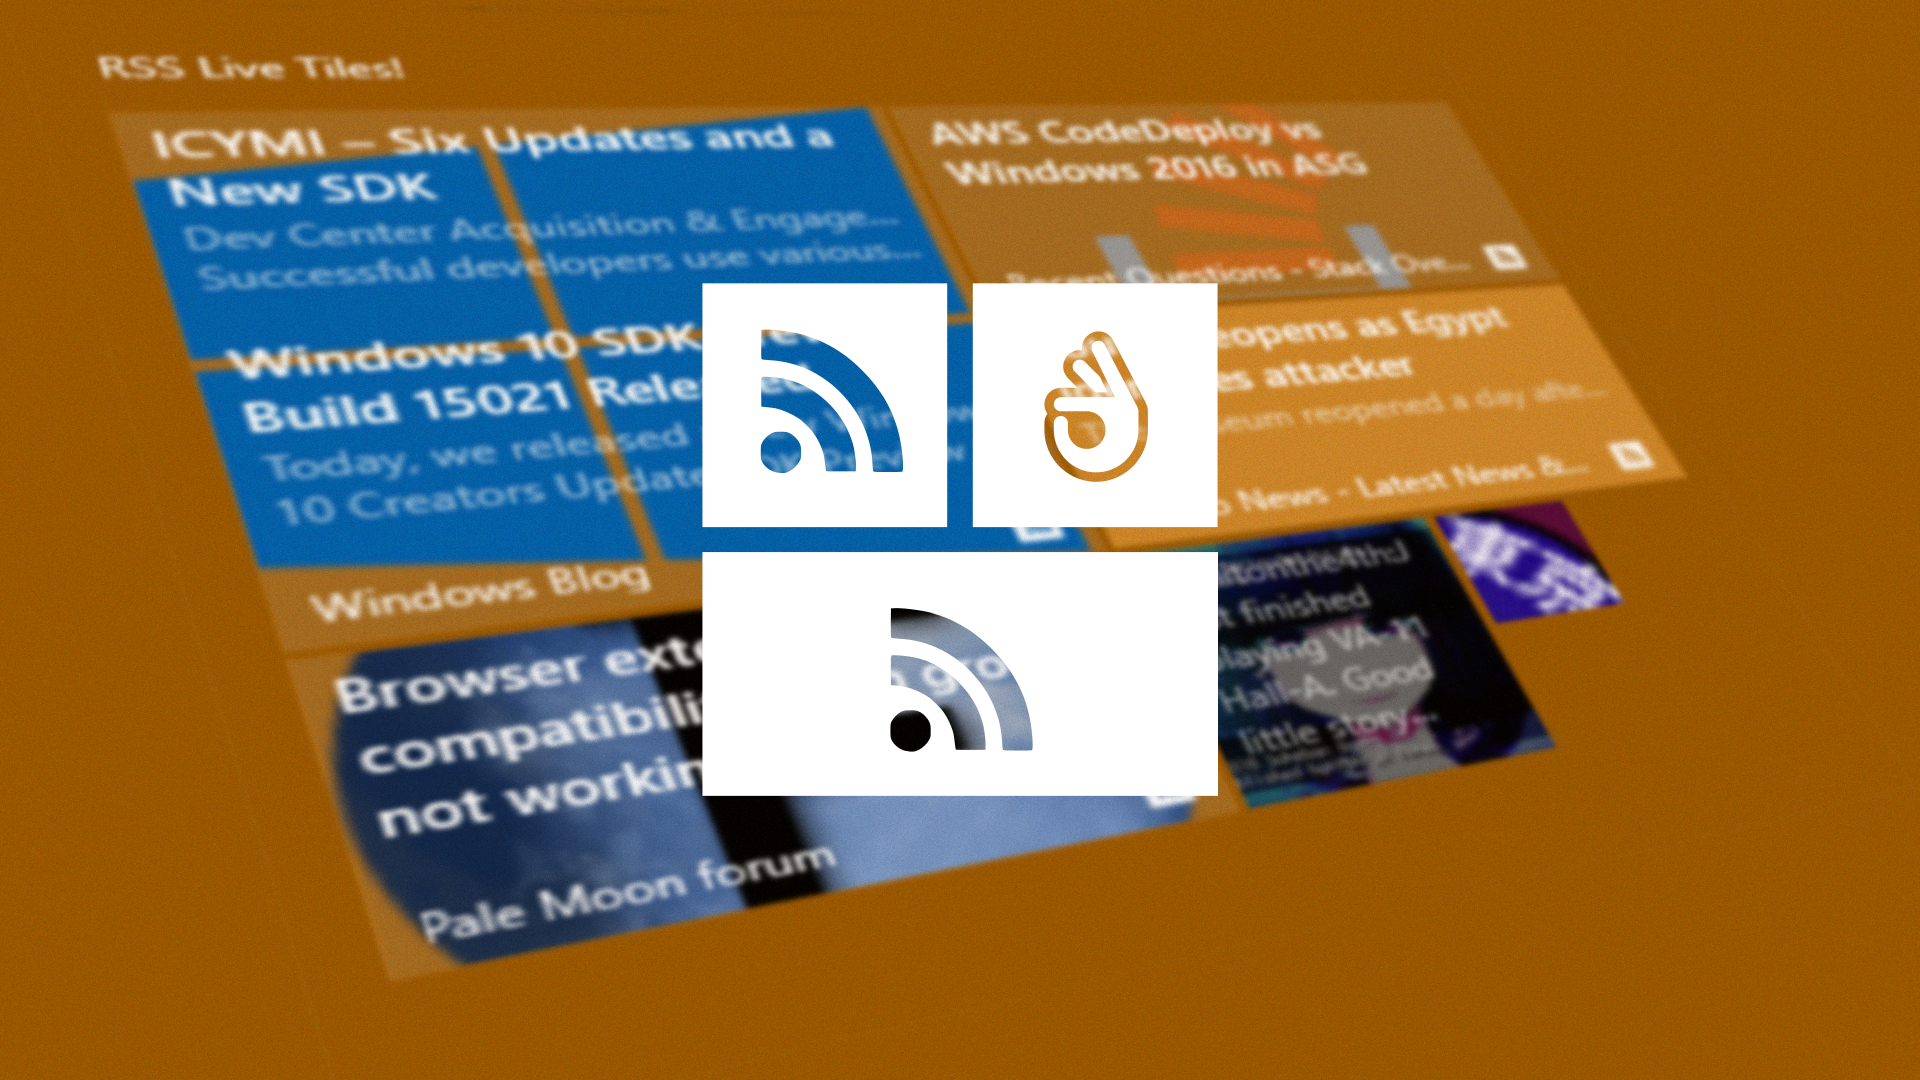 Get RSS Live Tiles - Microsoft Store